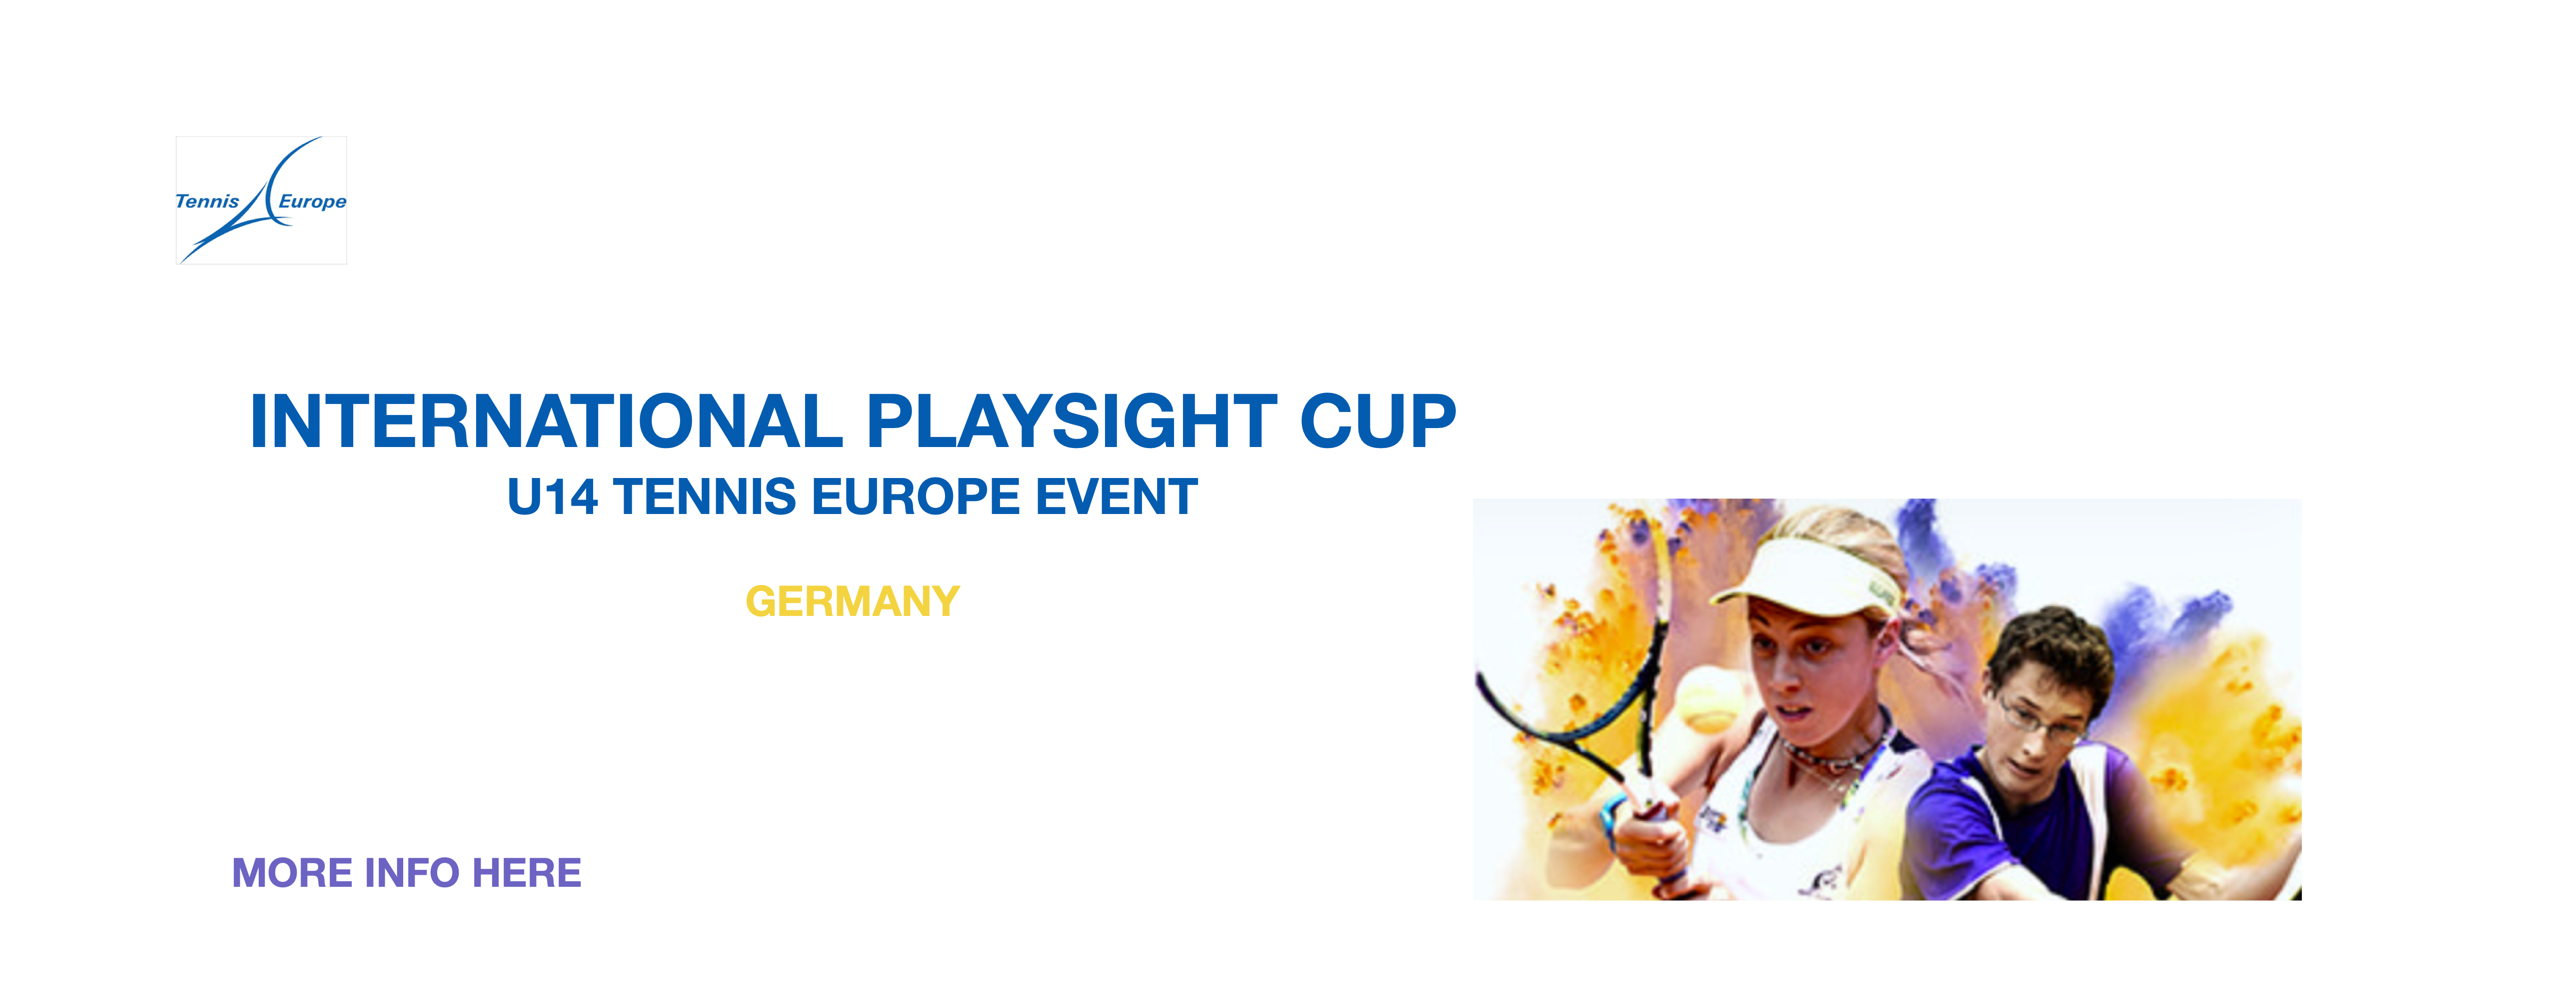 INTERNATIONAL PLAYSIGHT CUP U14 TENNIS EUROPE EVENT